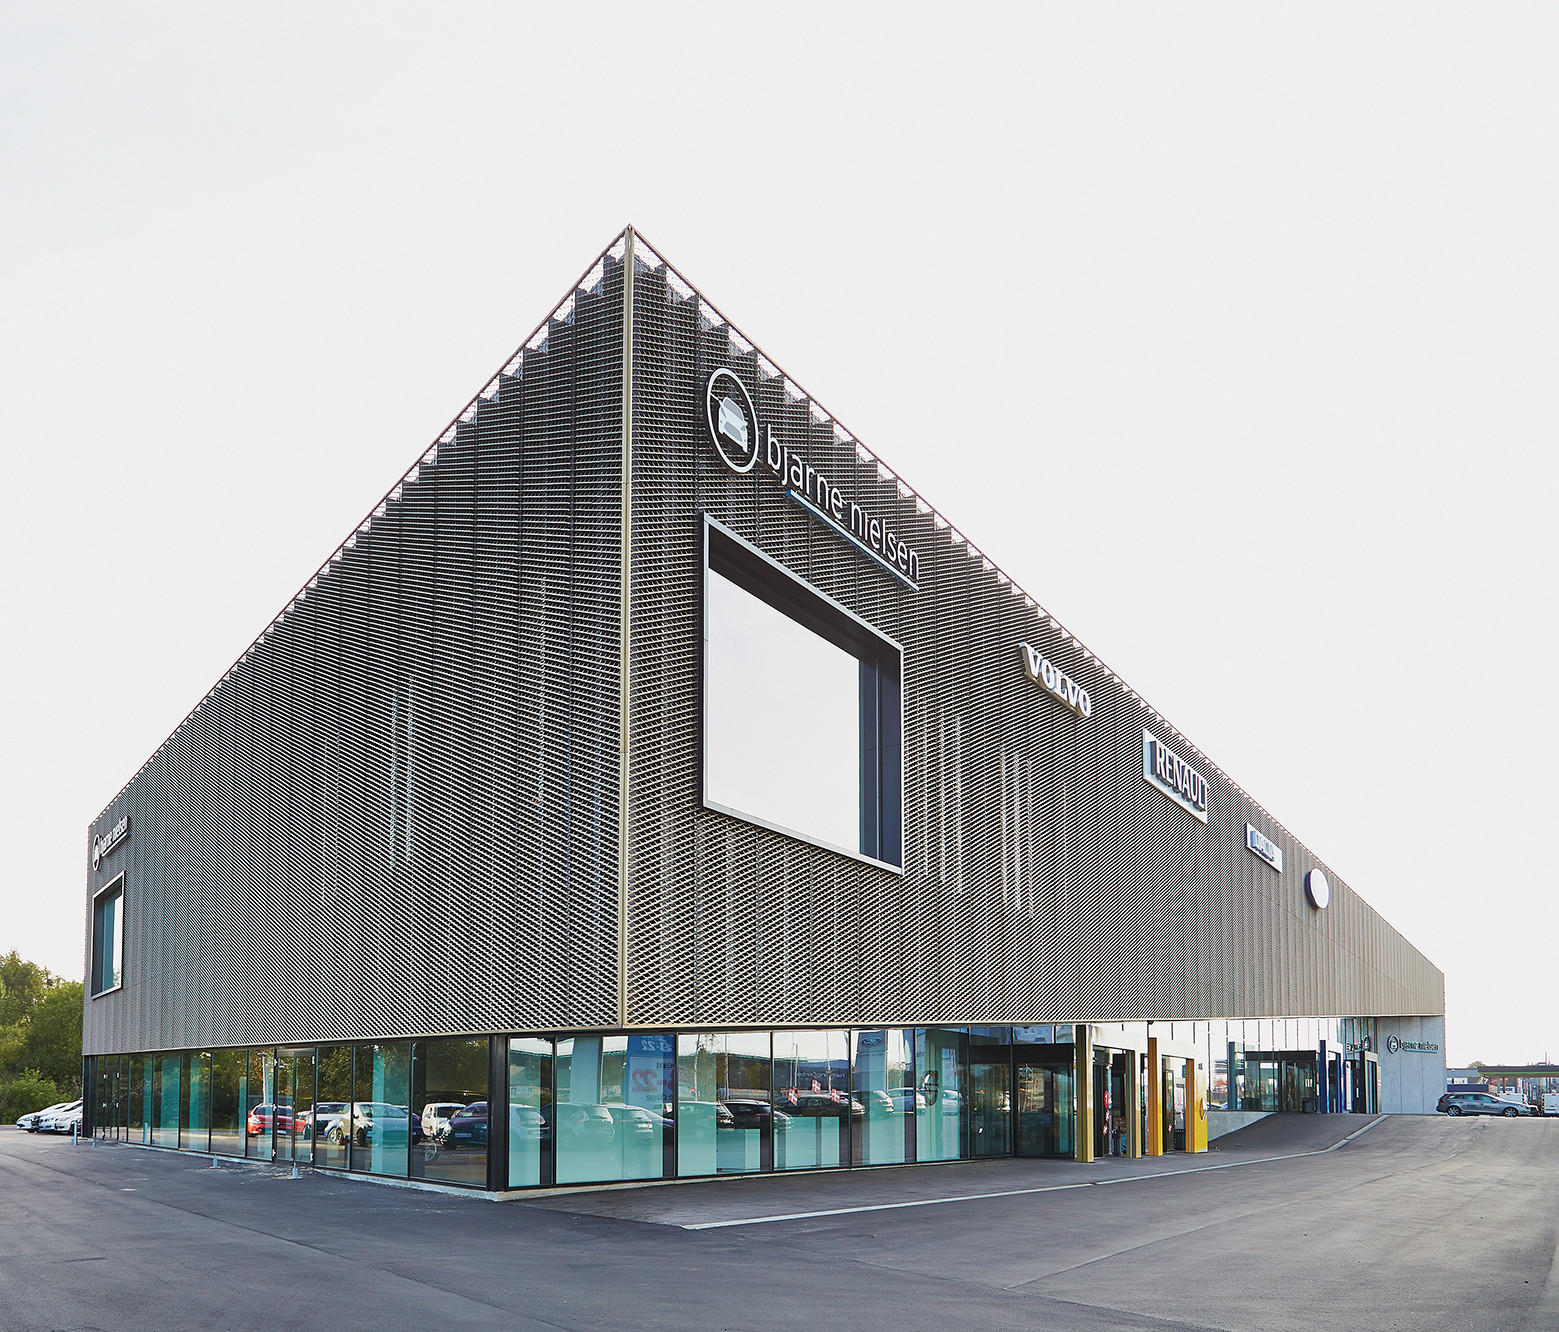 Showroom automotriz en herning krads plataforma for Plataforma arquitectura